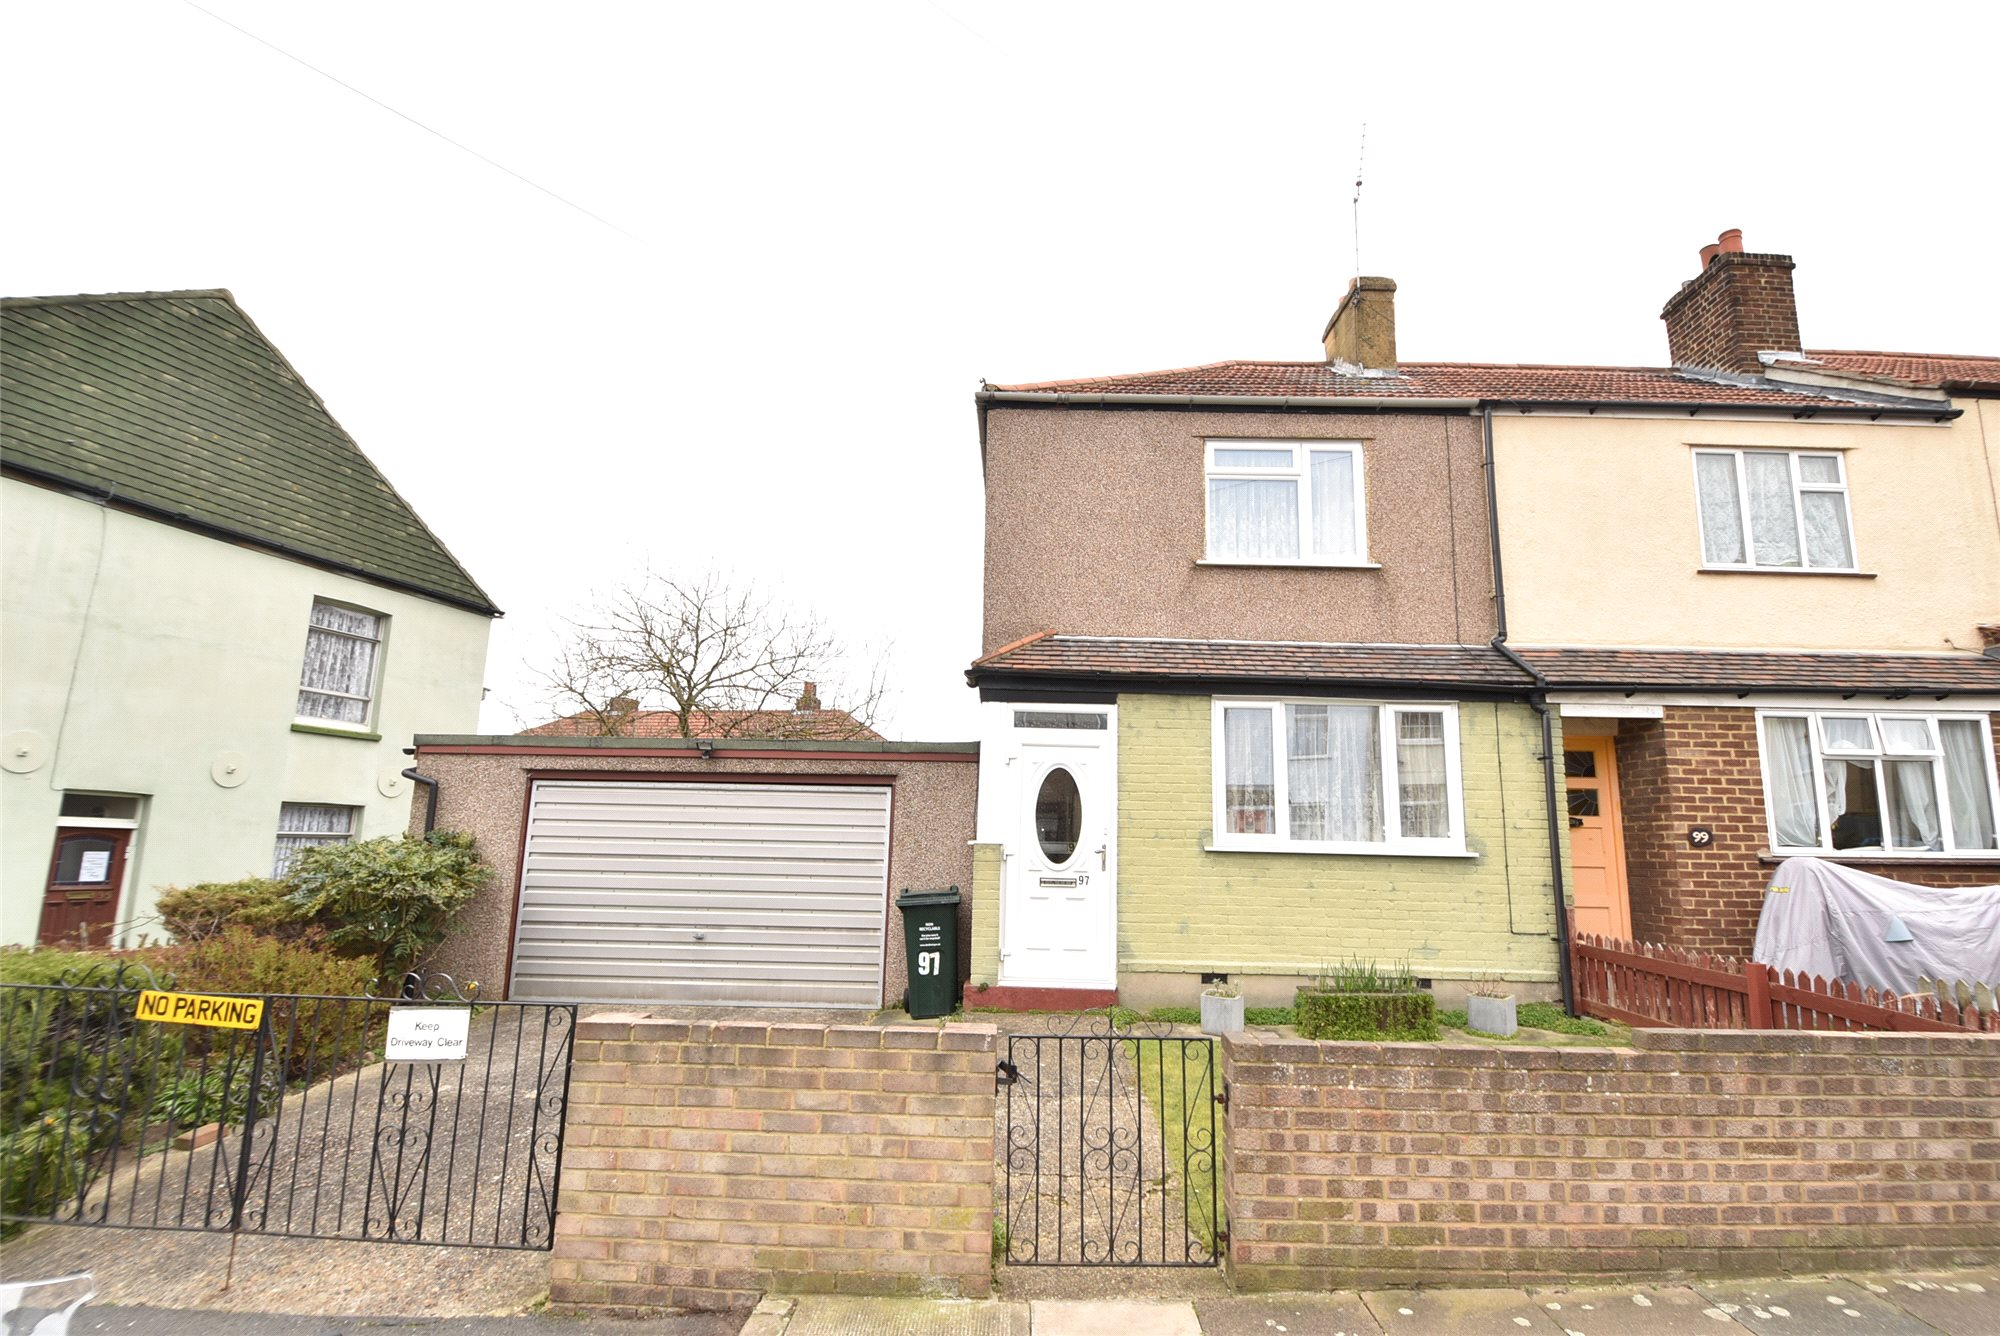 Howard Road, Dartford, Kent, DA1